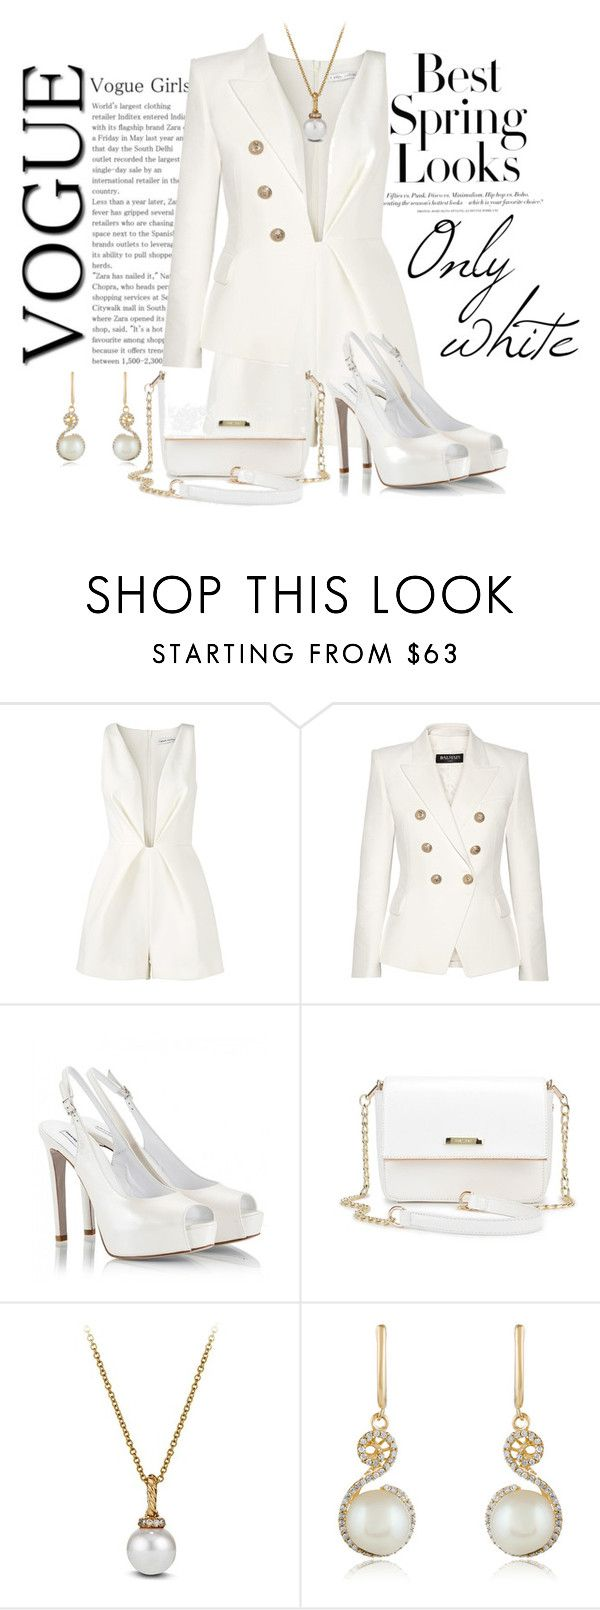 """""""Only white"""" by elona-makavelli ❤ liked on Polyvore featuring H&M, Finders Keepers, Balmain, Fratelli Karida, David Yurman and Effy Jewelry"""